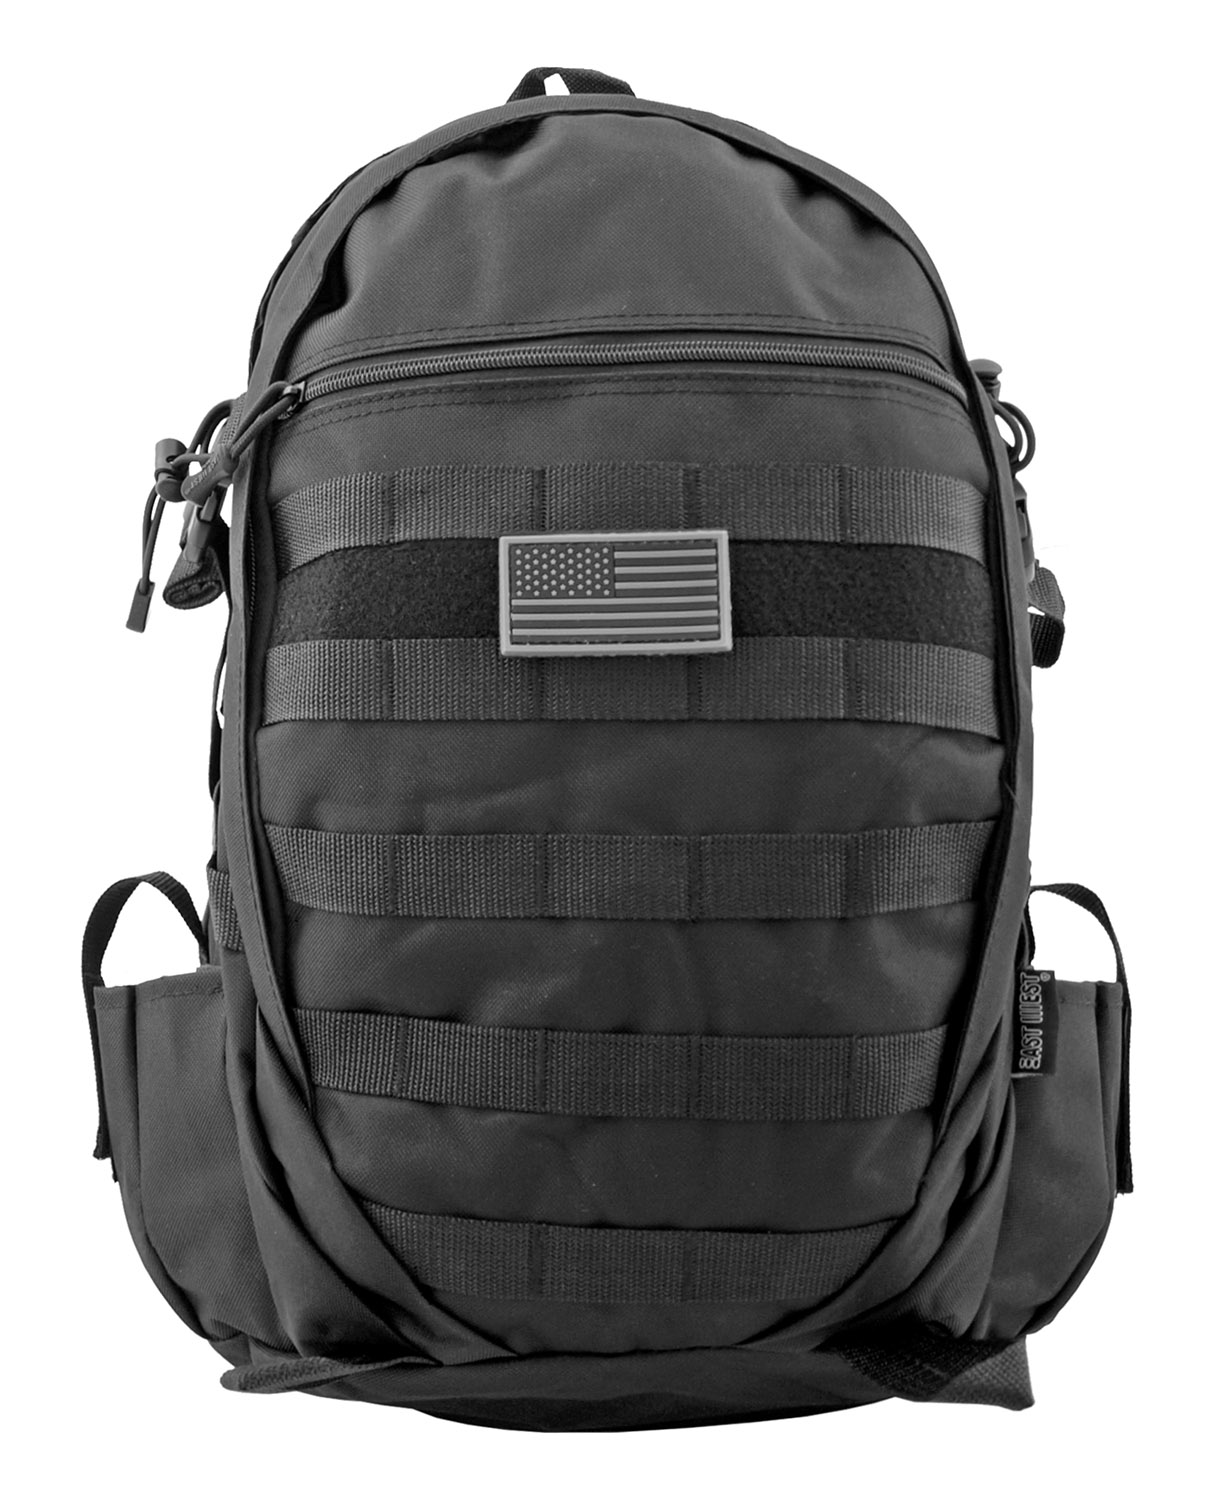 The Runner Tactical Bug Out Backpack - Black